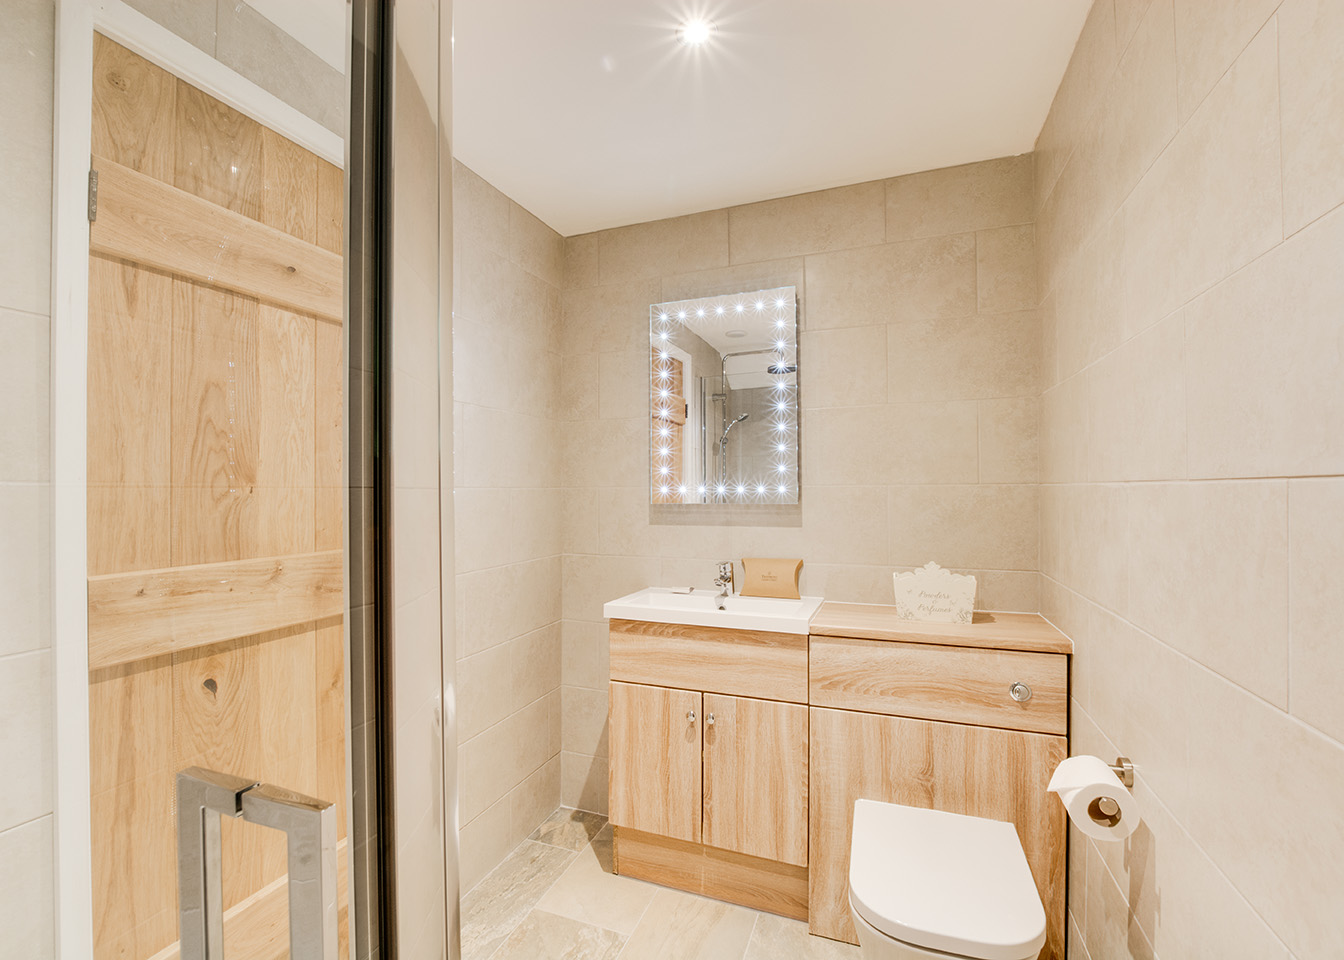 Bathroom 1 of Troutstream luxury self catering converted barn holiday cottage at Penrose Burden in North Cornwall 01.jpg